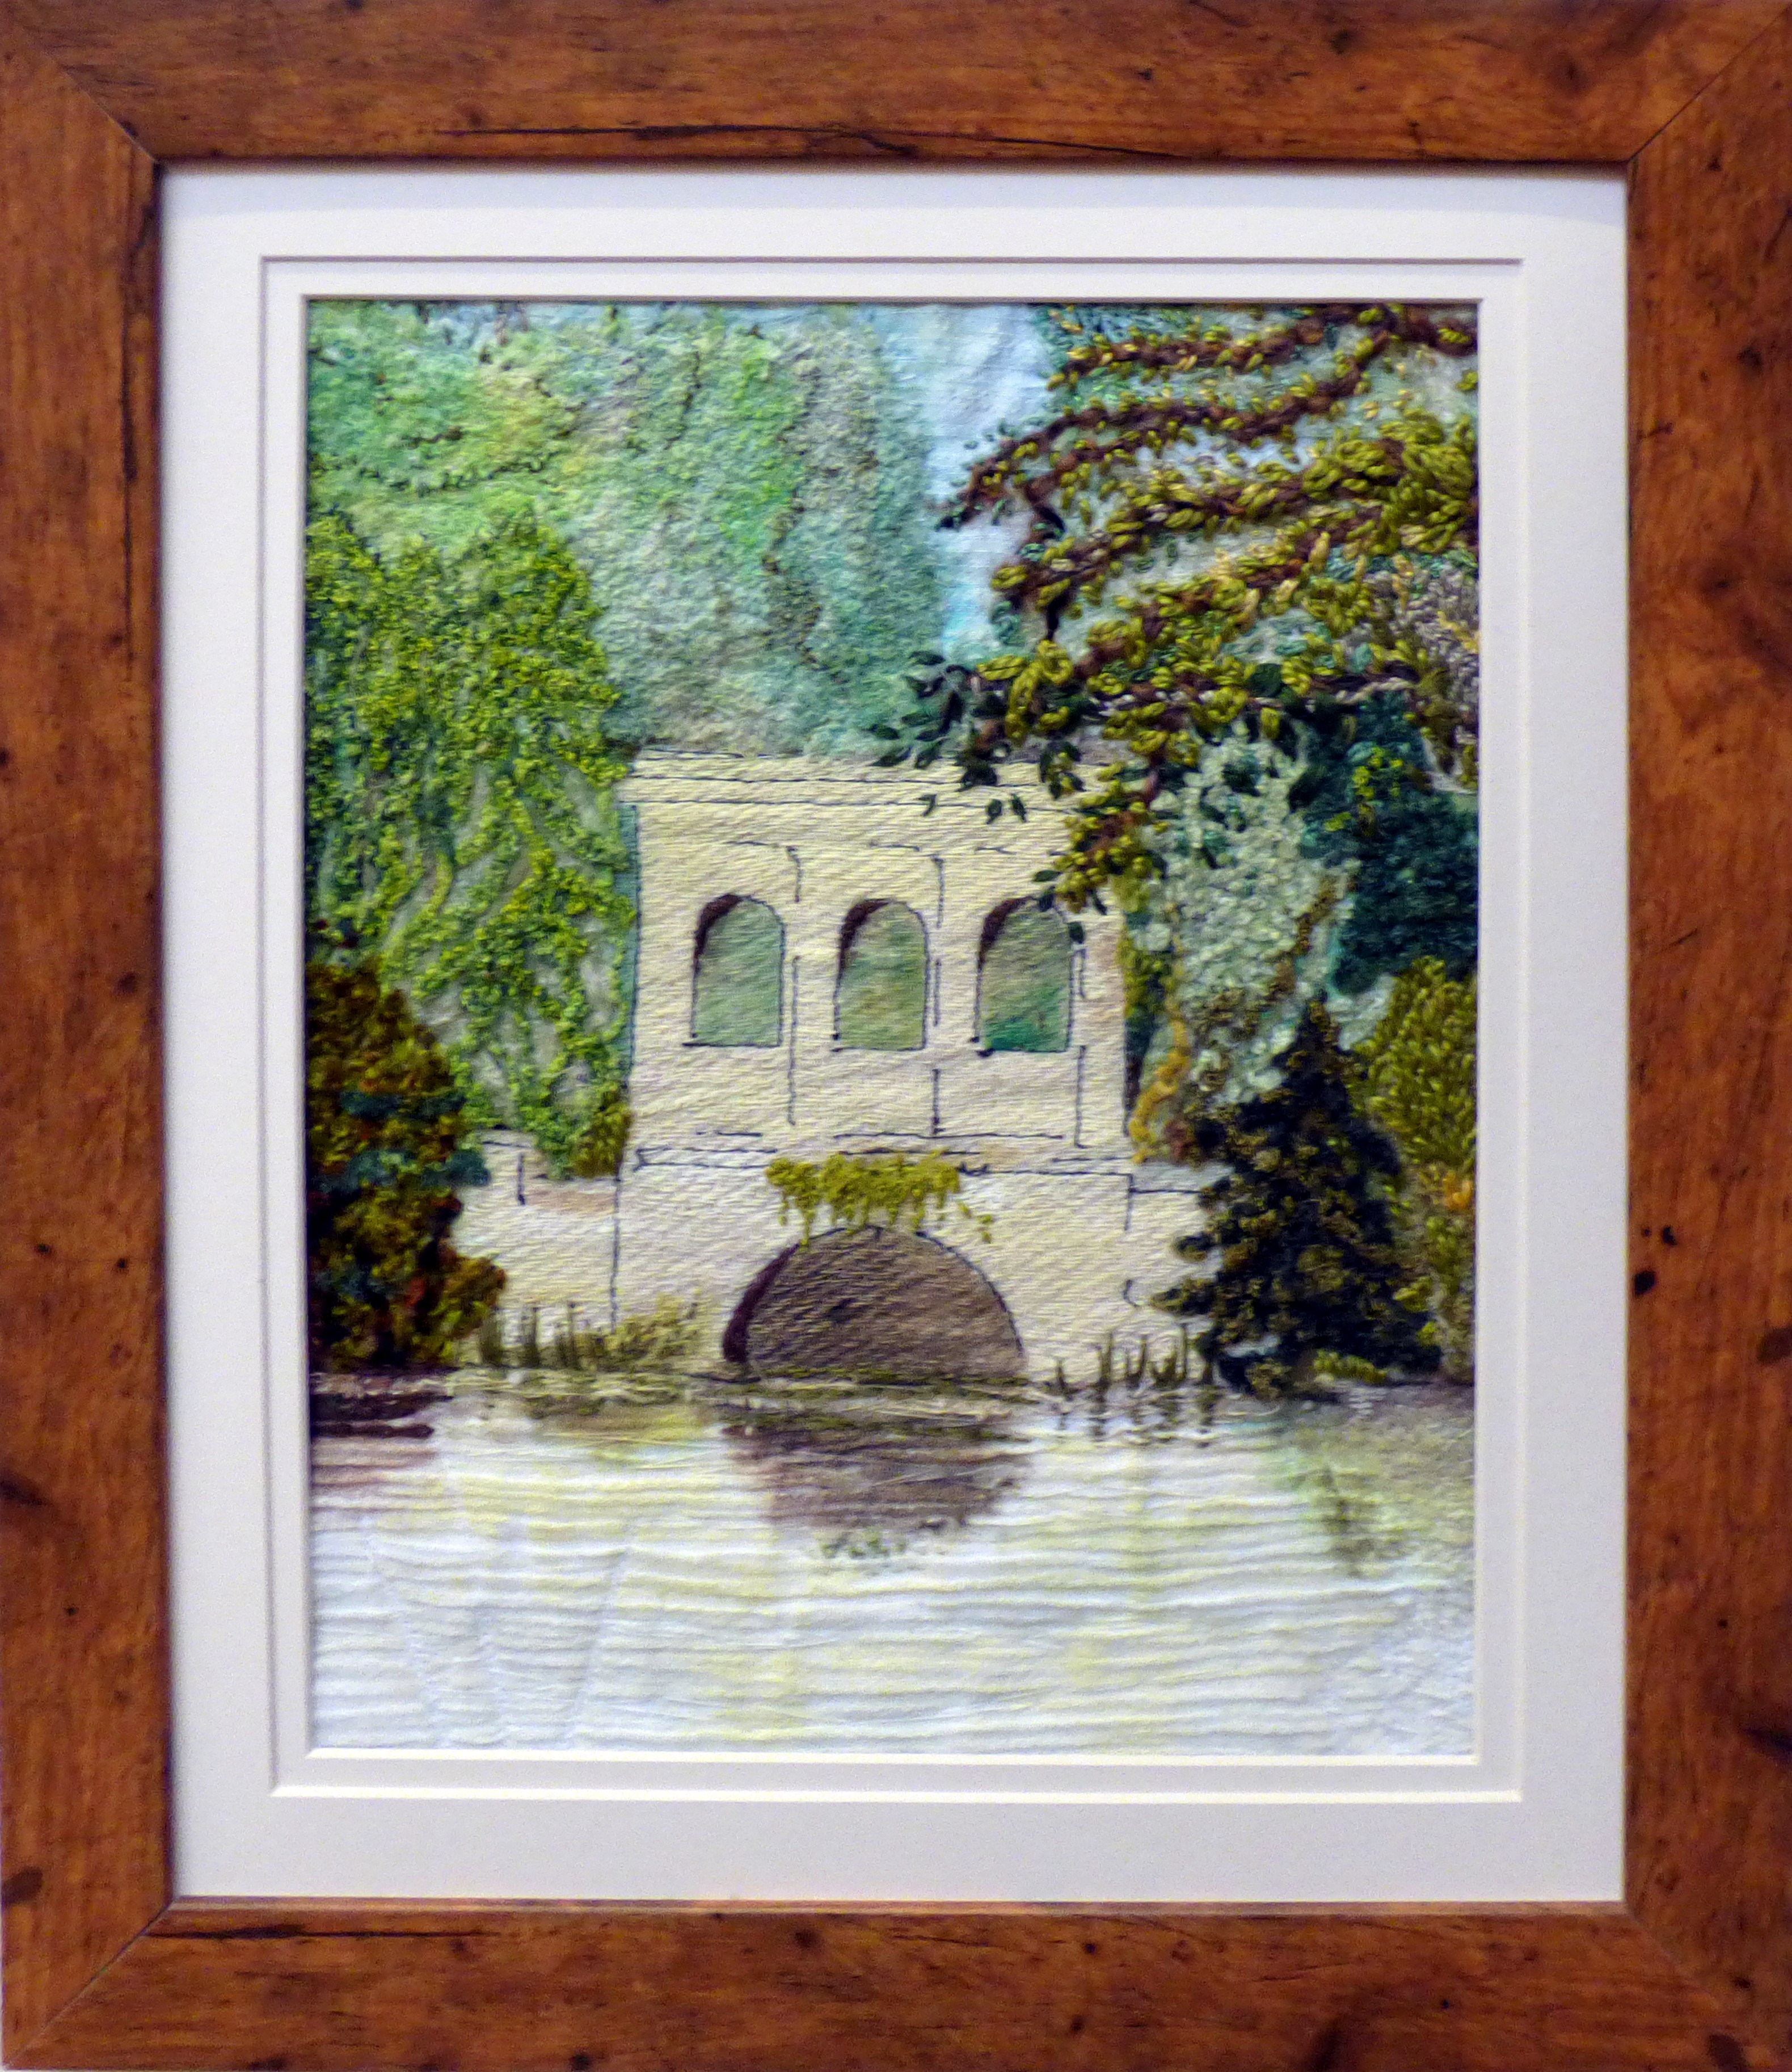 BIRKENHEAD PARK by Kate Cook, hand stitching on painted fabric